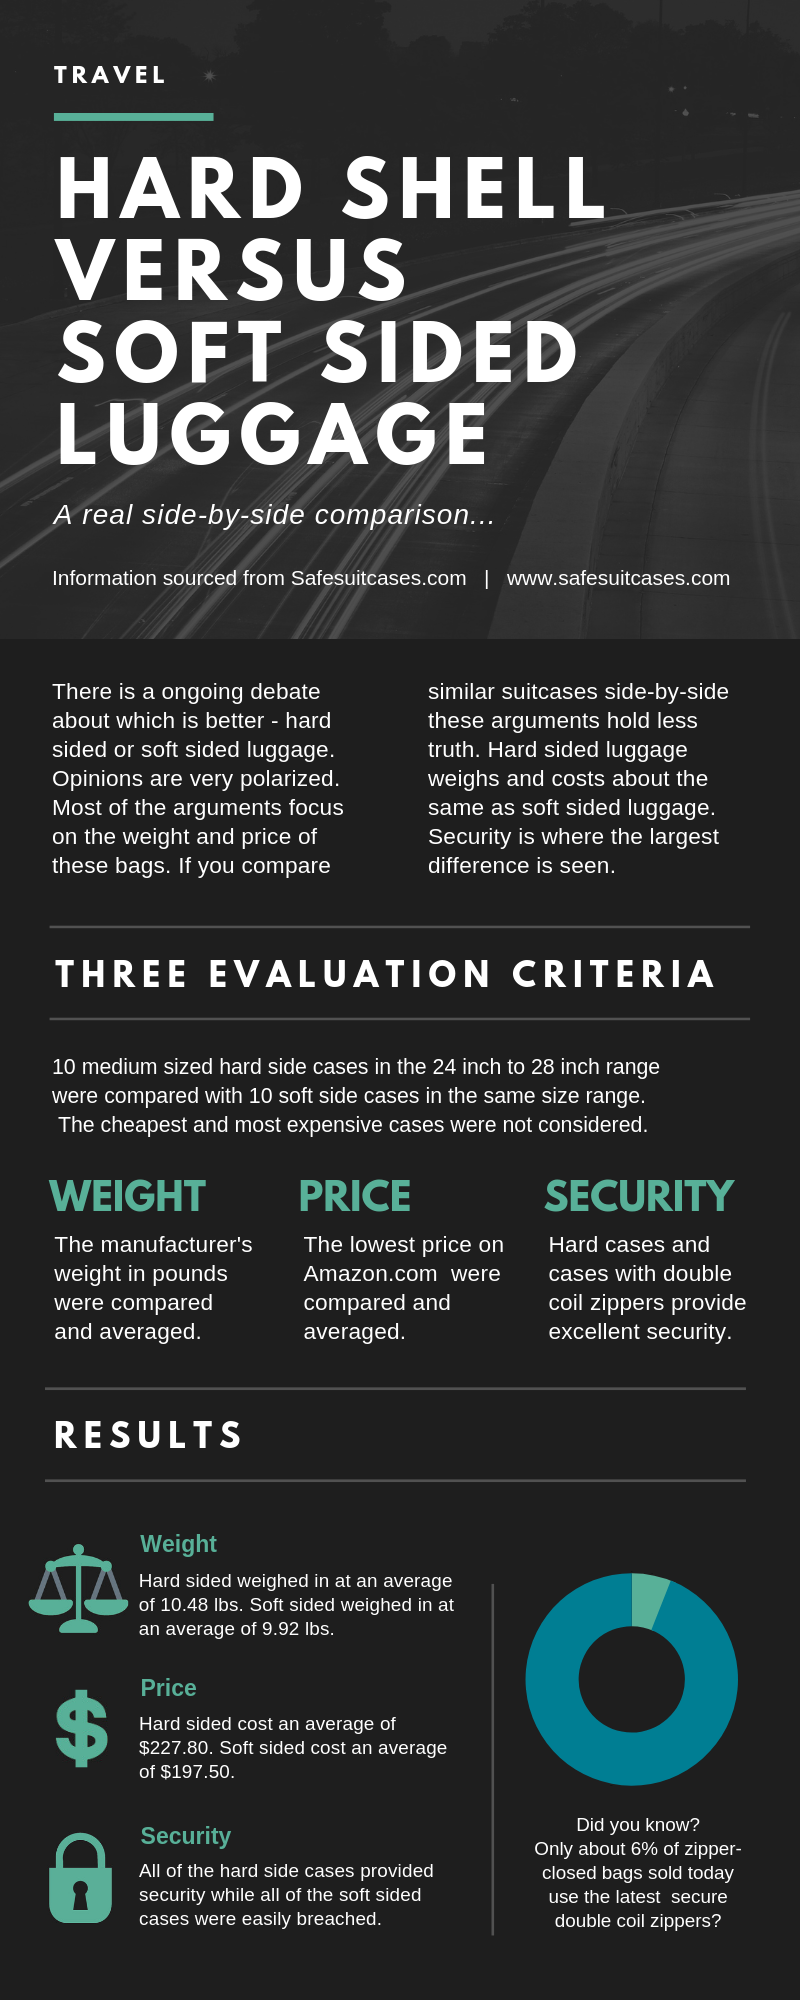 Hard shell versus soft sided luggage info graphic